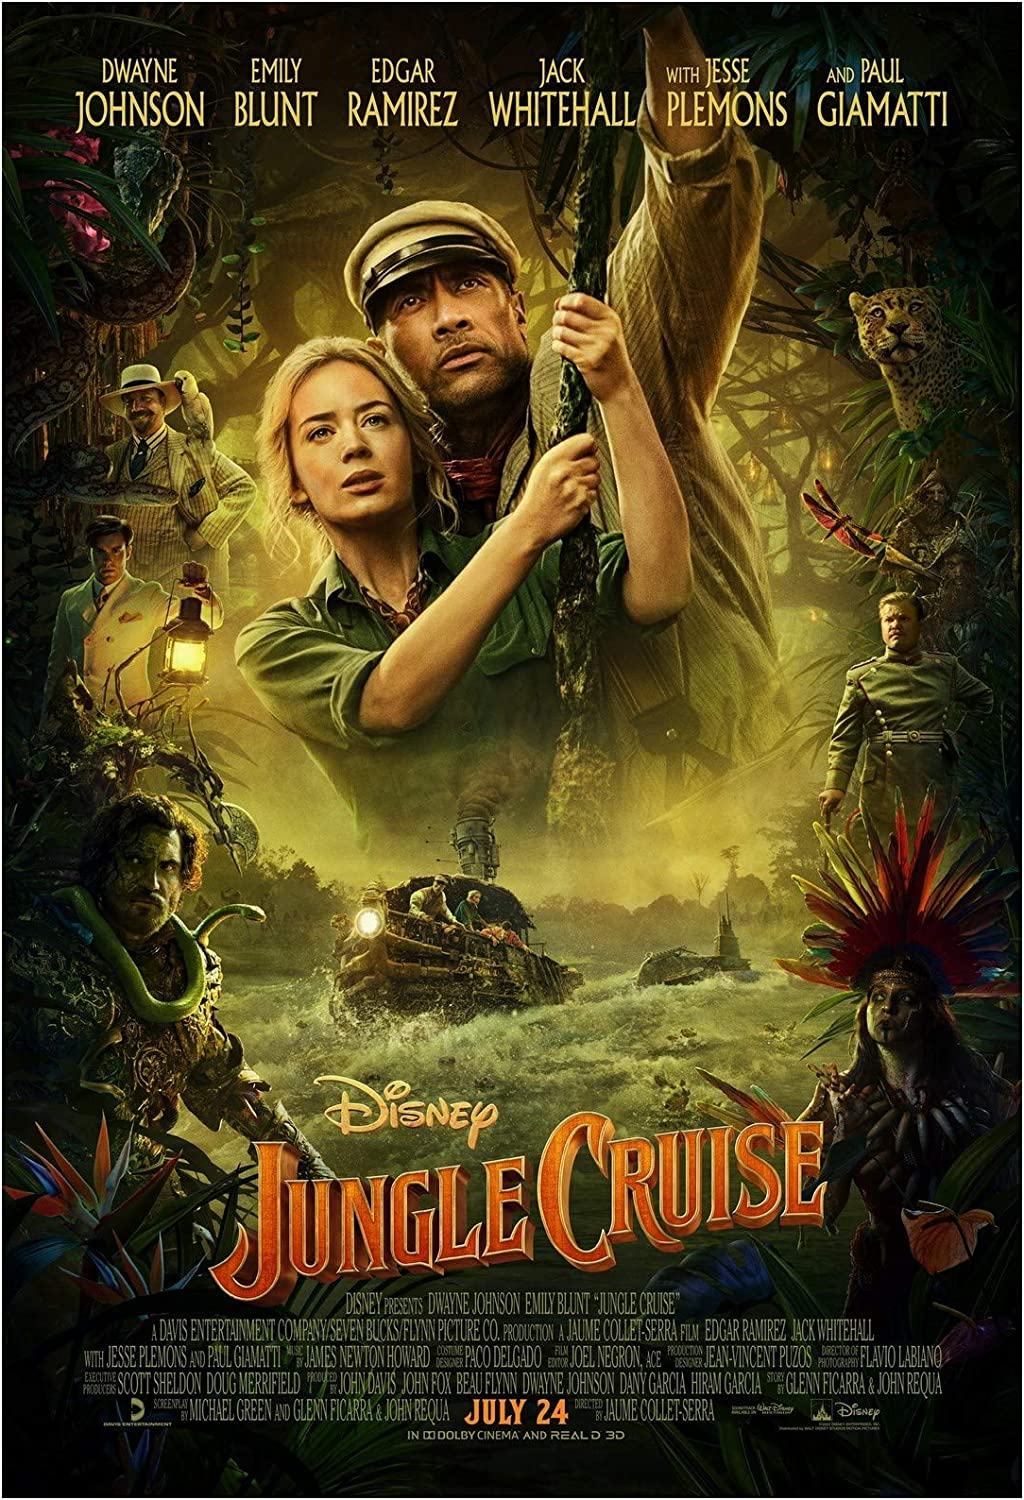 Amazon.com: Jungle Cruise Movie Poster 24 x 36 Inches Full Sized ...